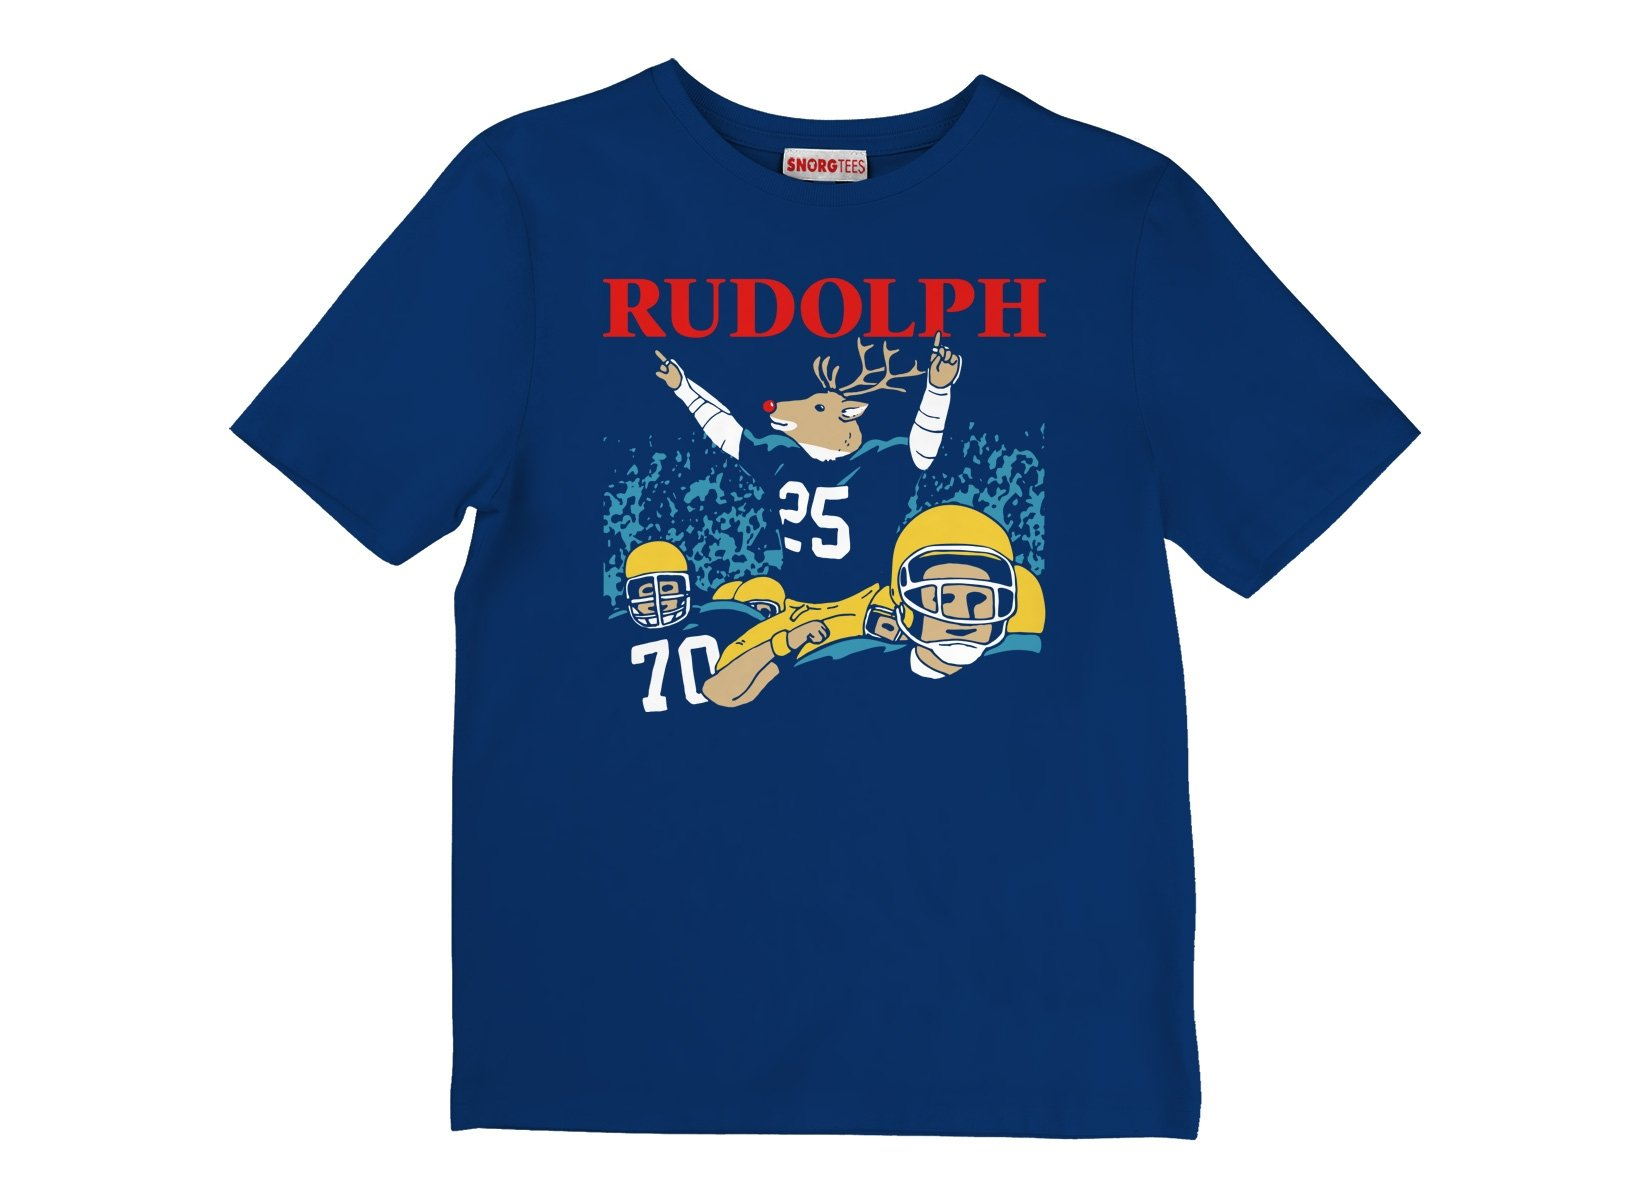 Rudolph on Kids T-Shirt